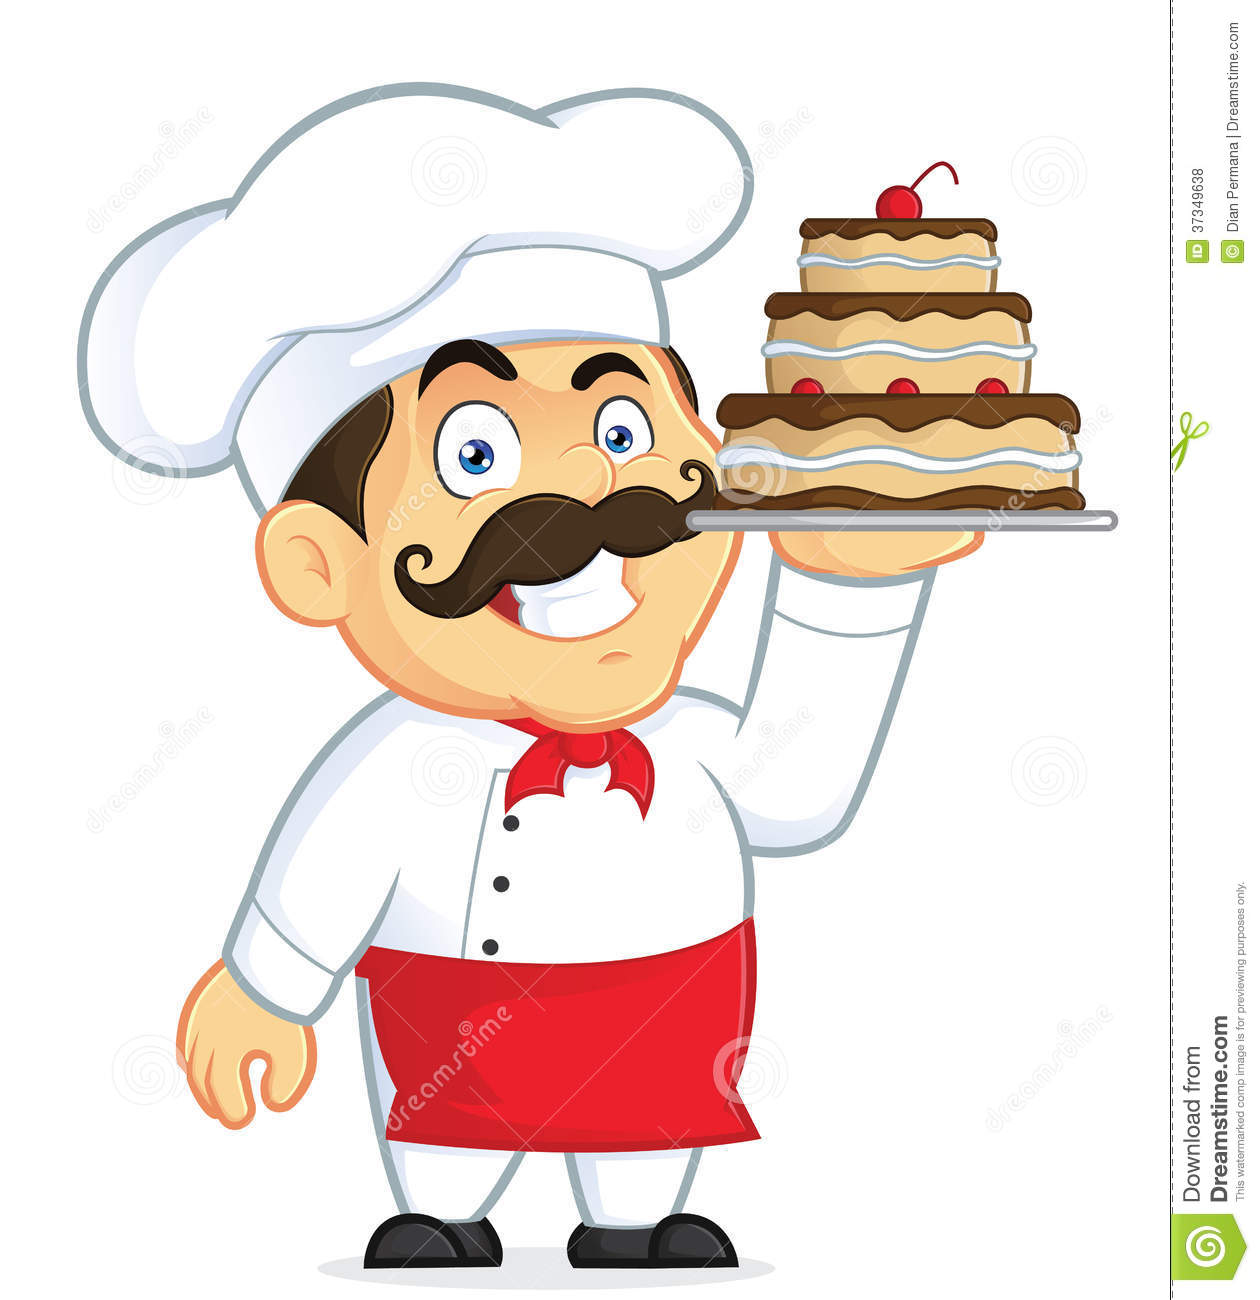 Animated clipart chef image royalty free download Chef clipart animation - ClipartFest image royalty free download